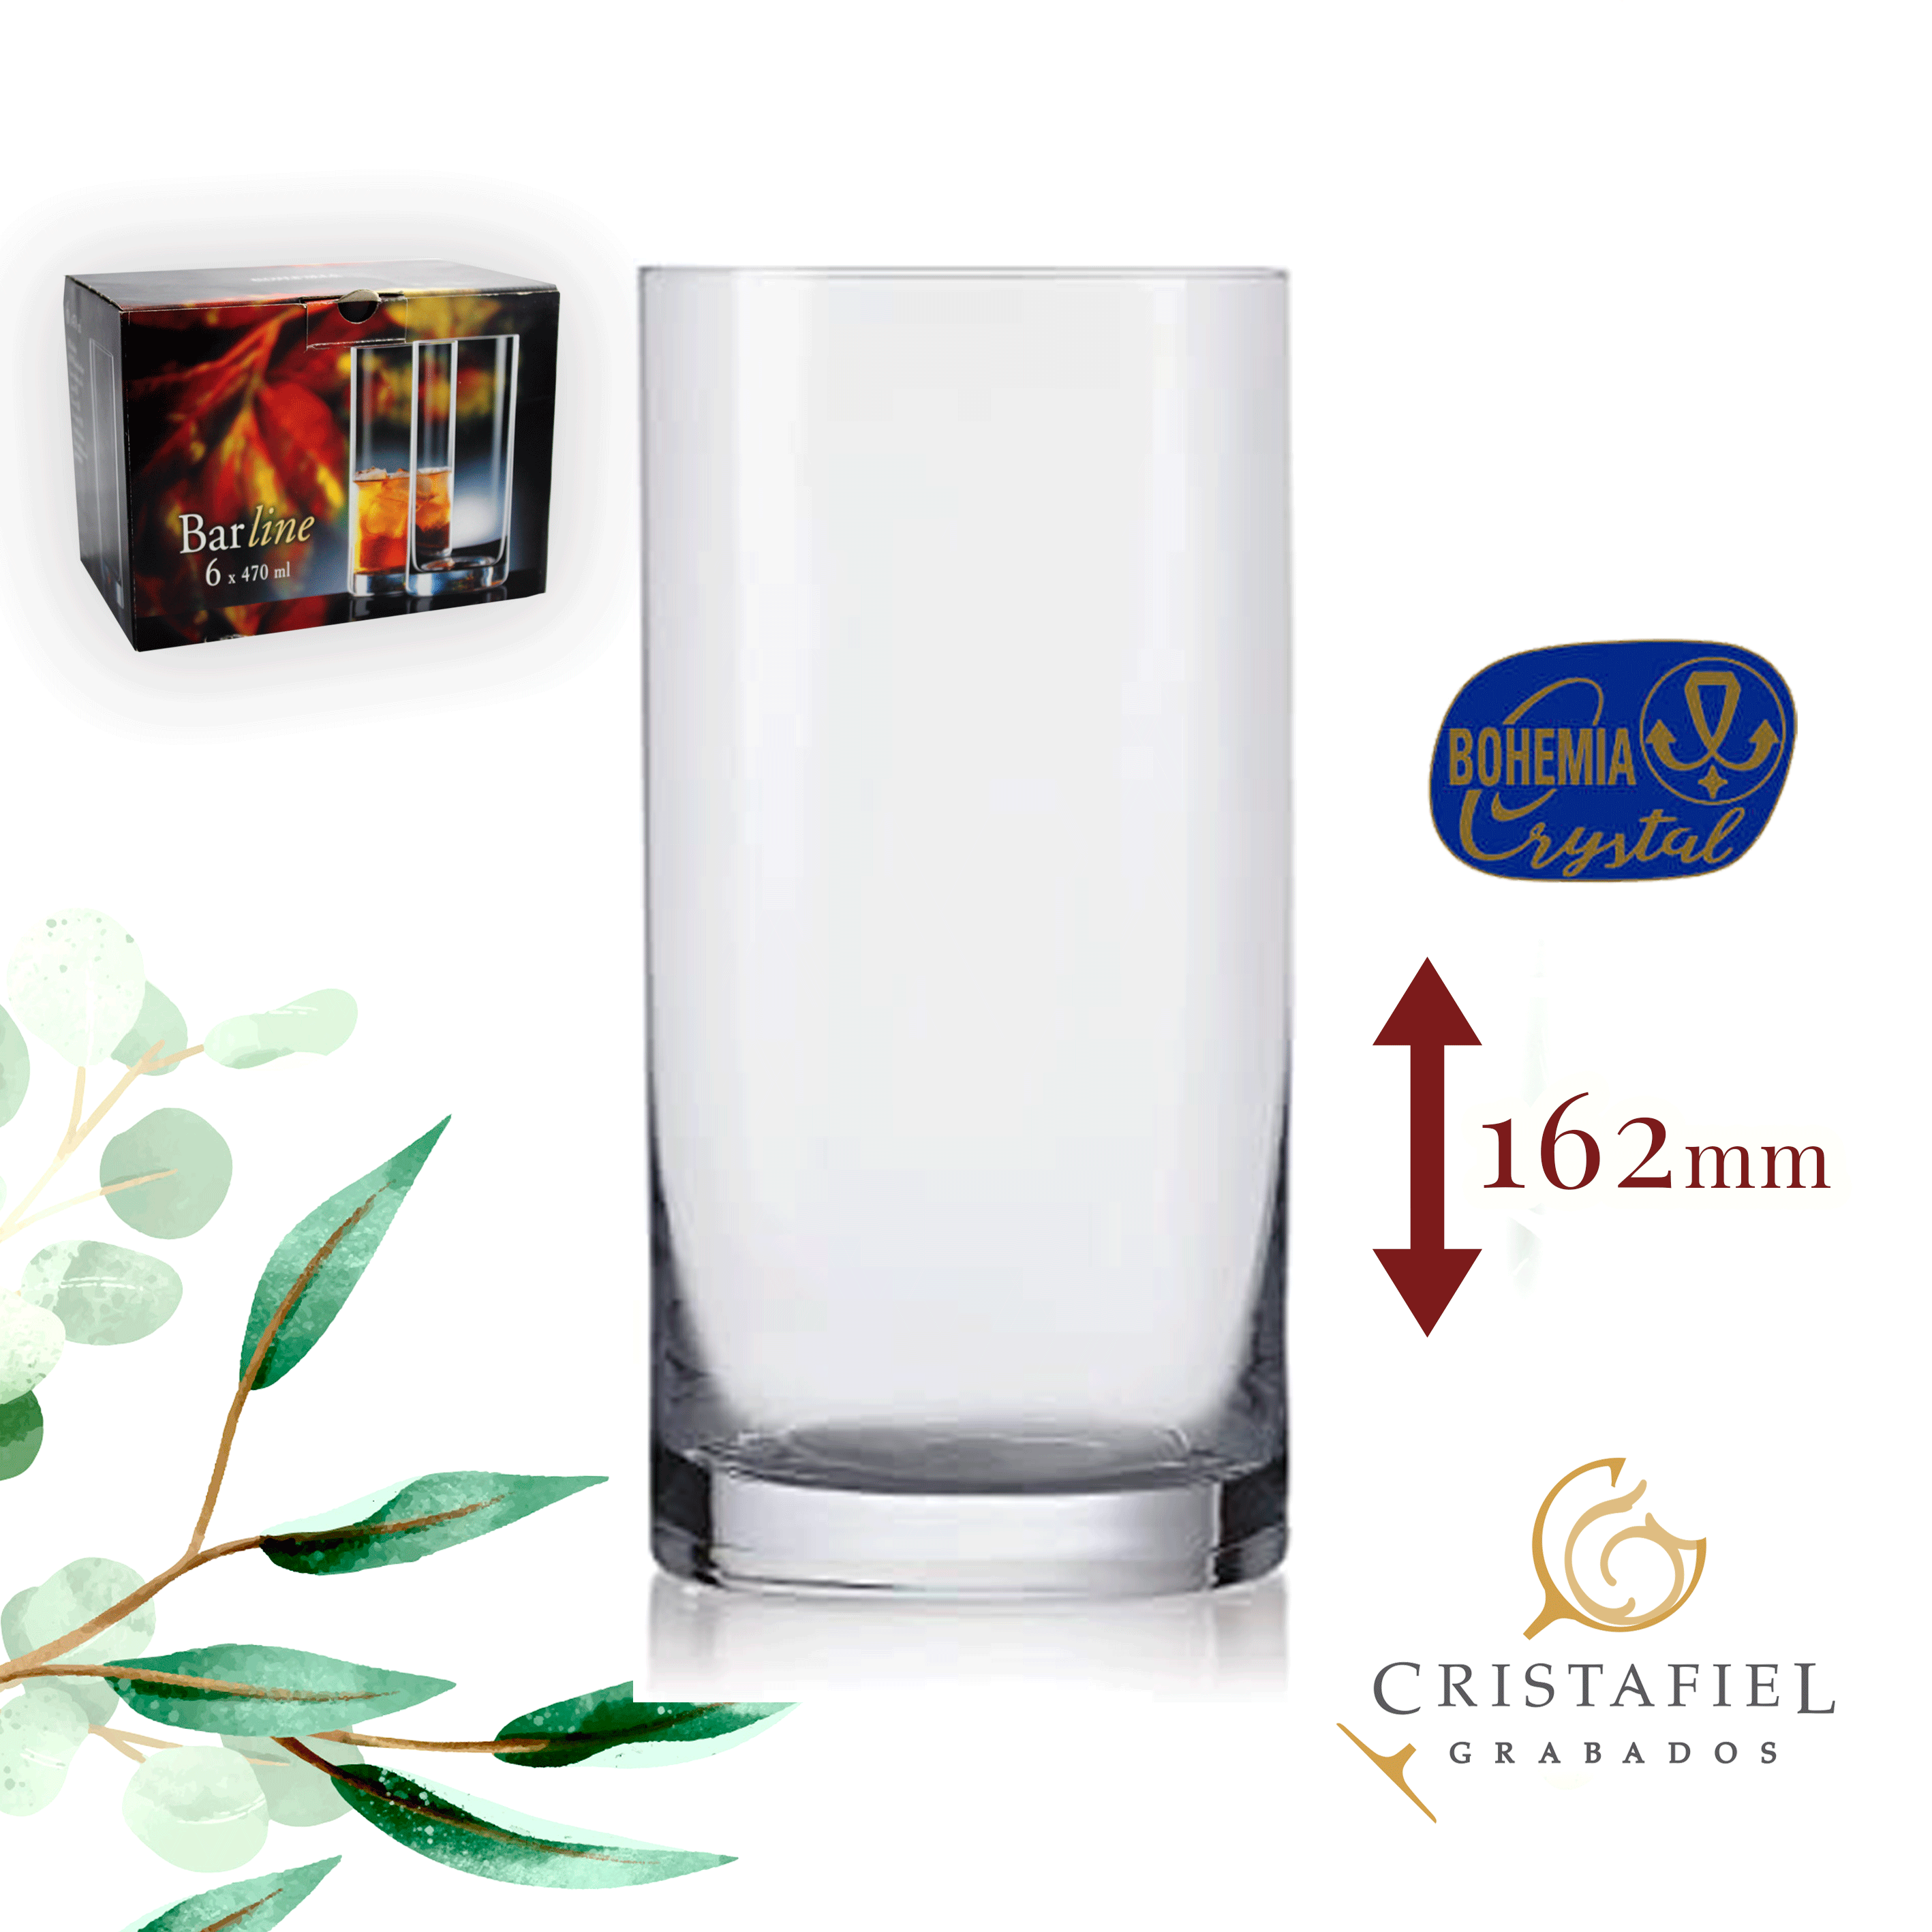 Vasos Barline 470ml Outlet Grabados Cristafiel